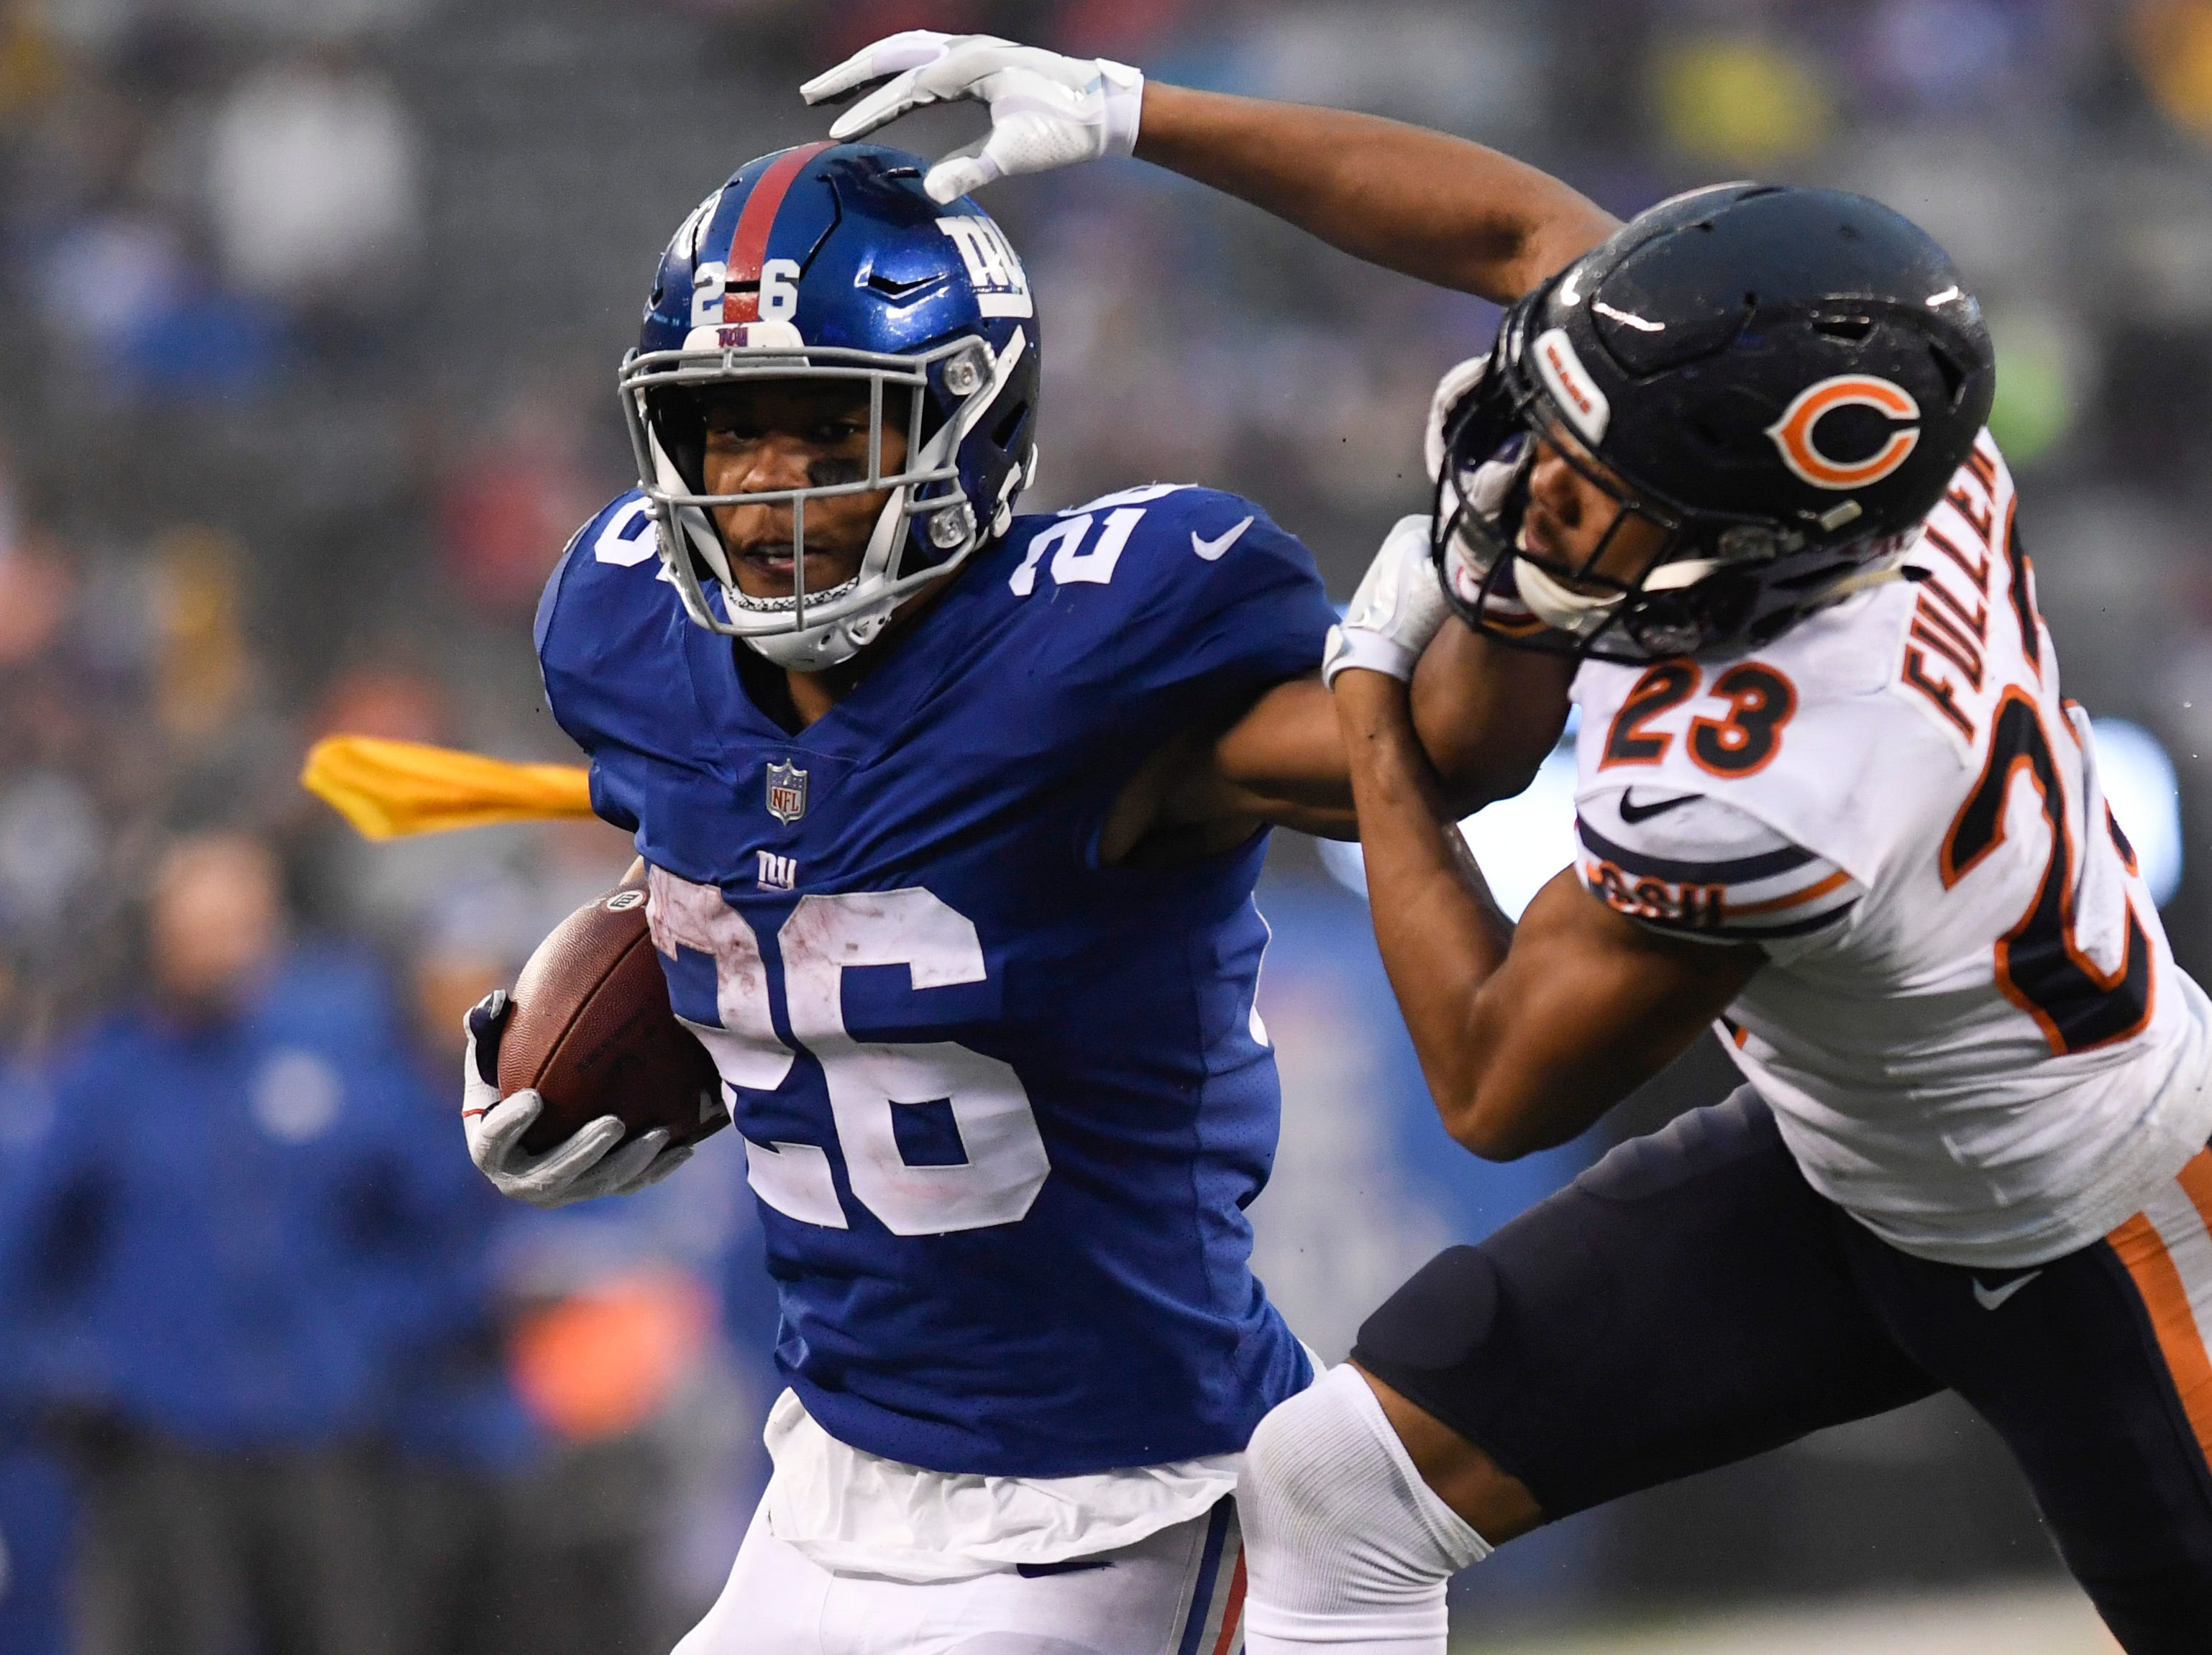 New York Giants running back Saquon Barkley (26) stiff-arms Chicago Bears cornerback Kyle Fuller (23) as a flag is thrown for a penalty against the Giants. The New York Giants defeat the Chicago Bears in overtime 30-27 on Sunday, Dec. 2, 2018, in East Rutherford.